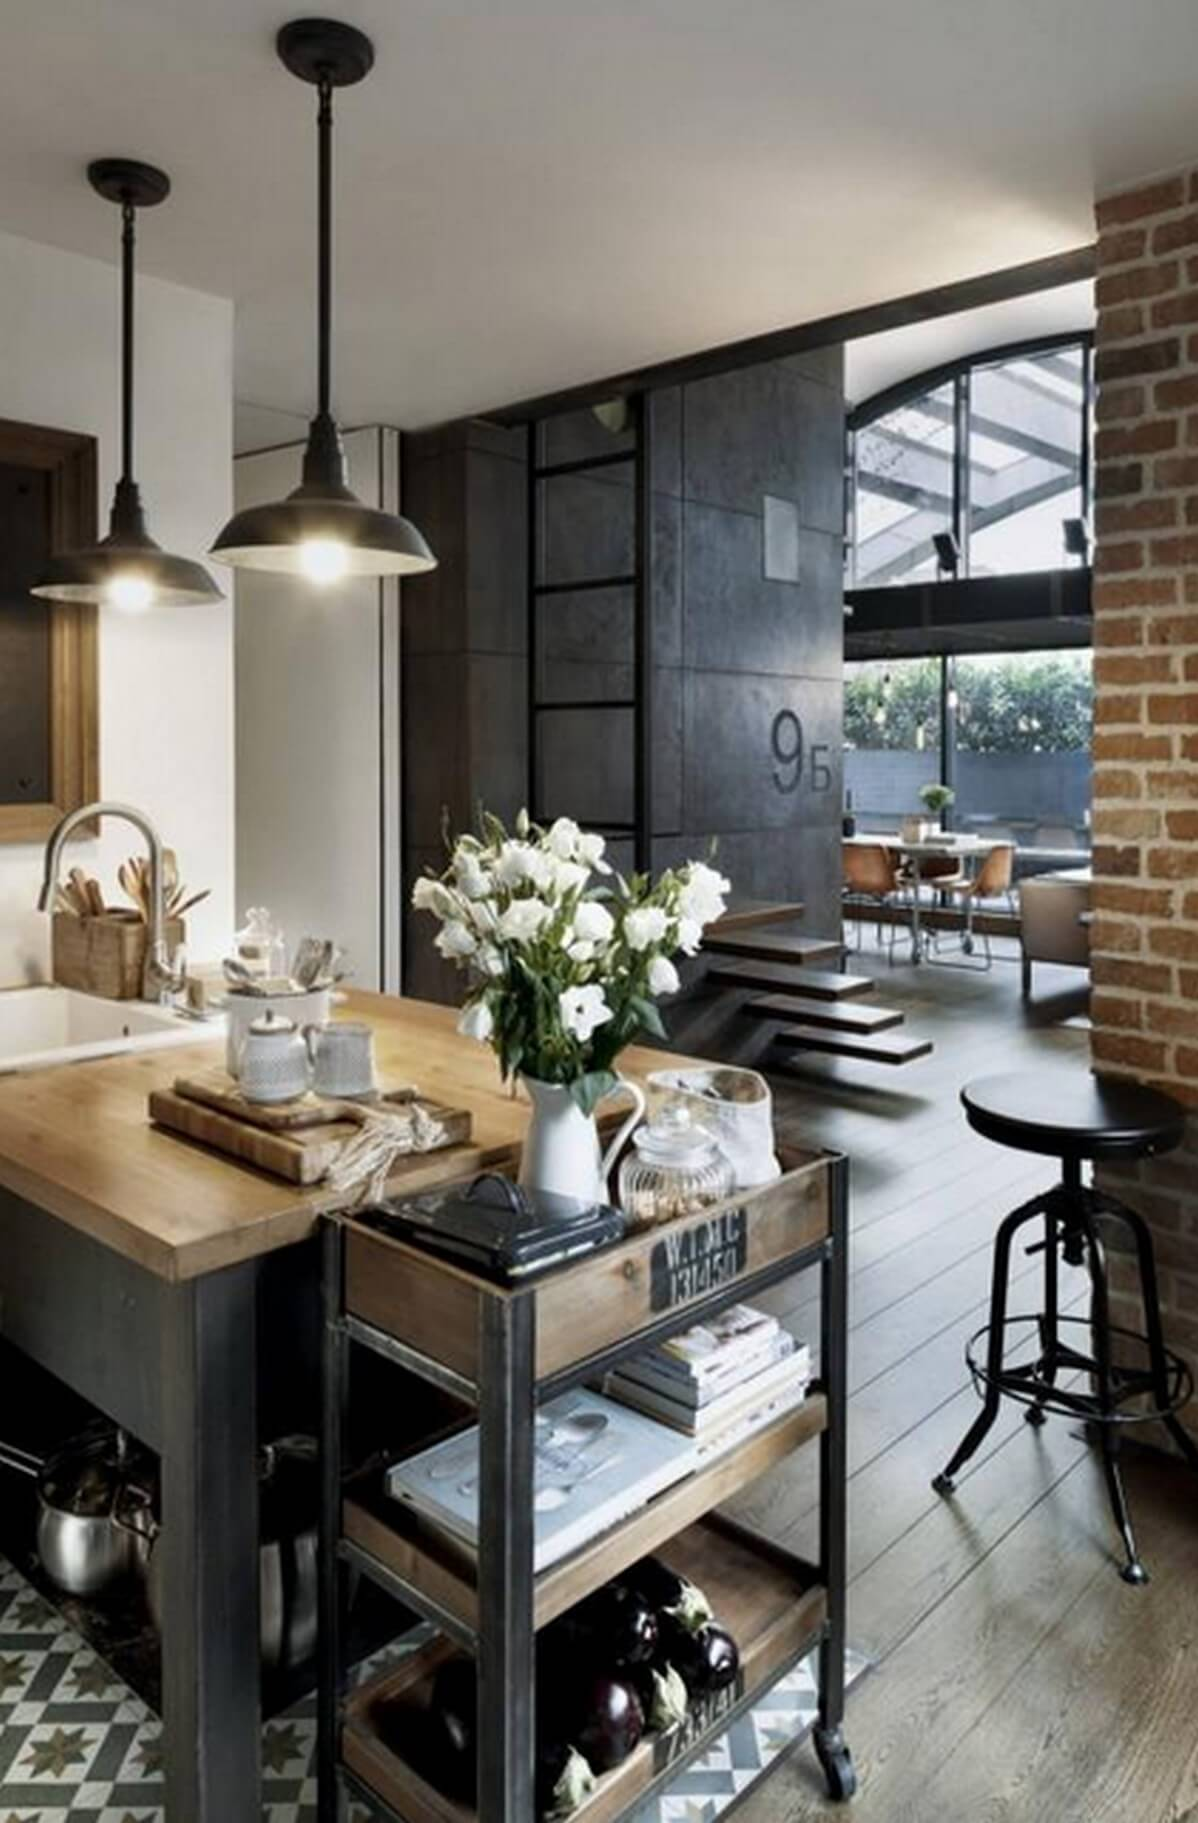 High Quality Industrial Home Decor Ideas For Kitchens